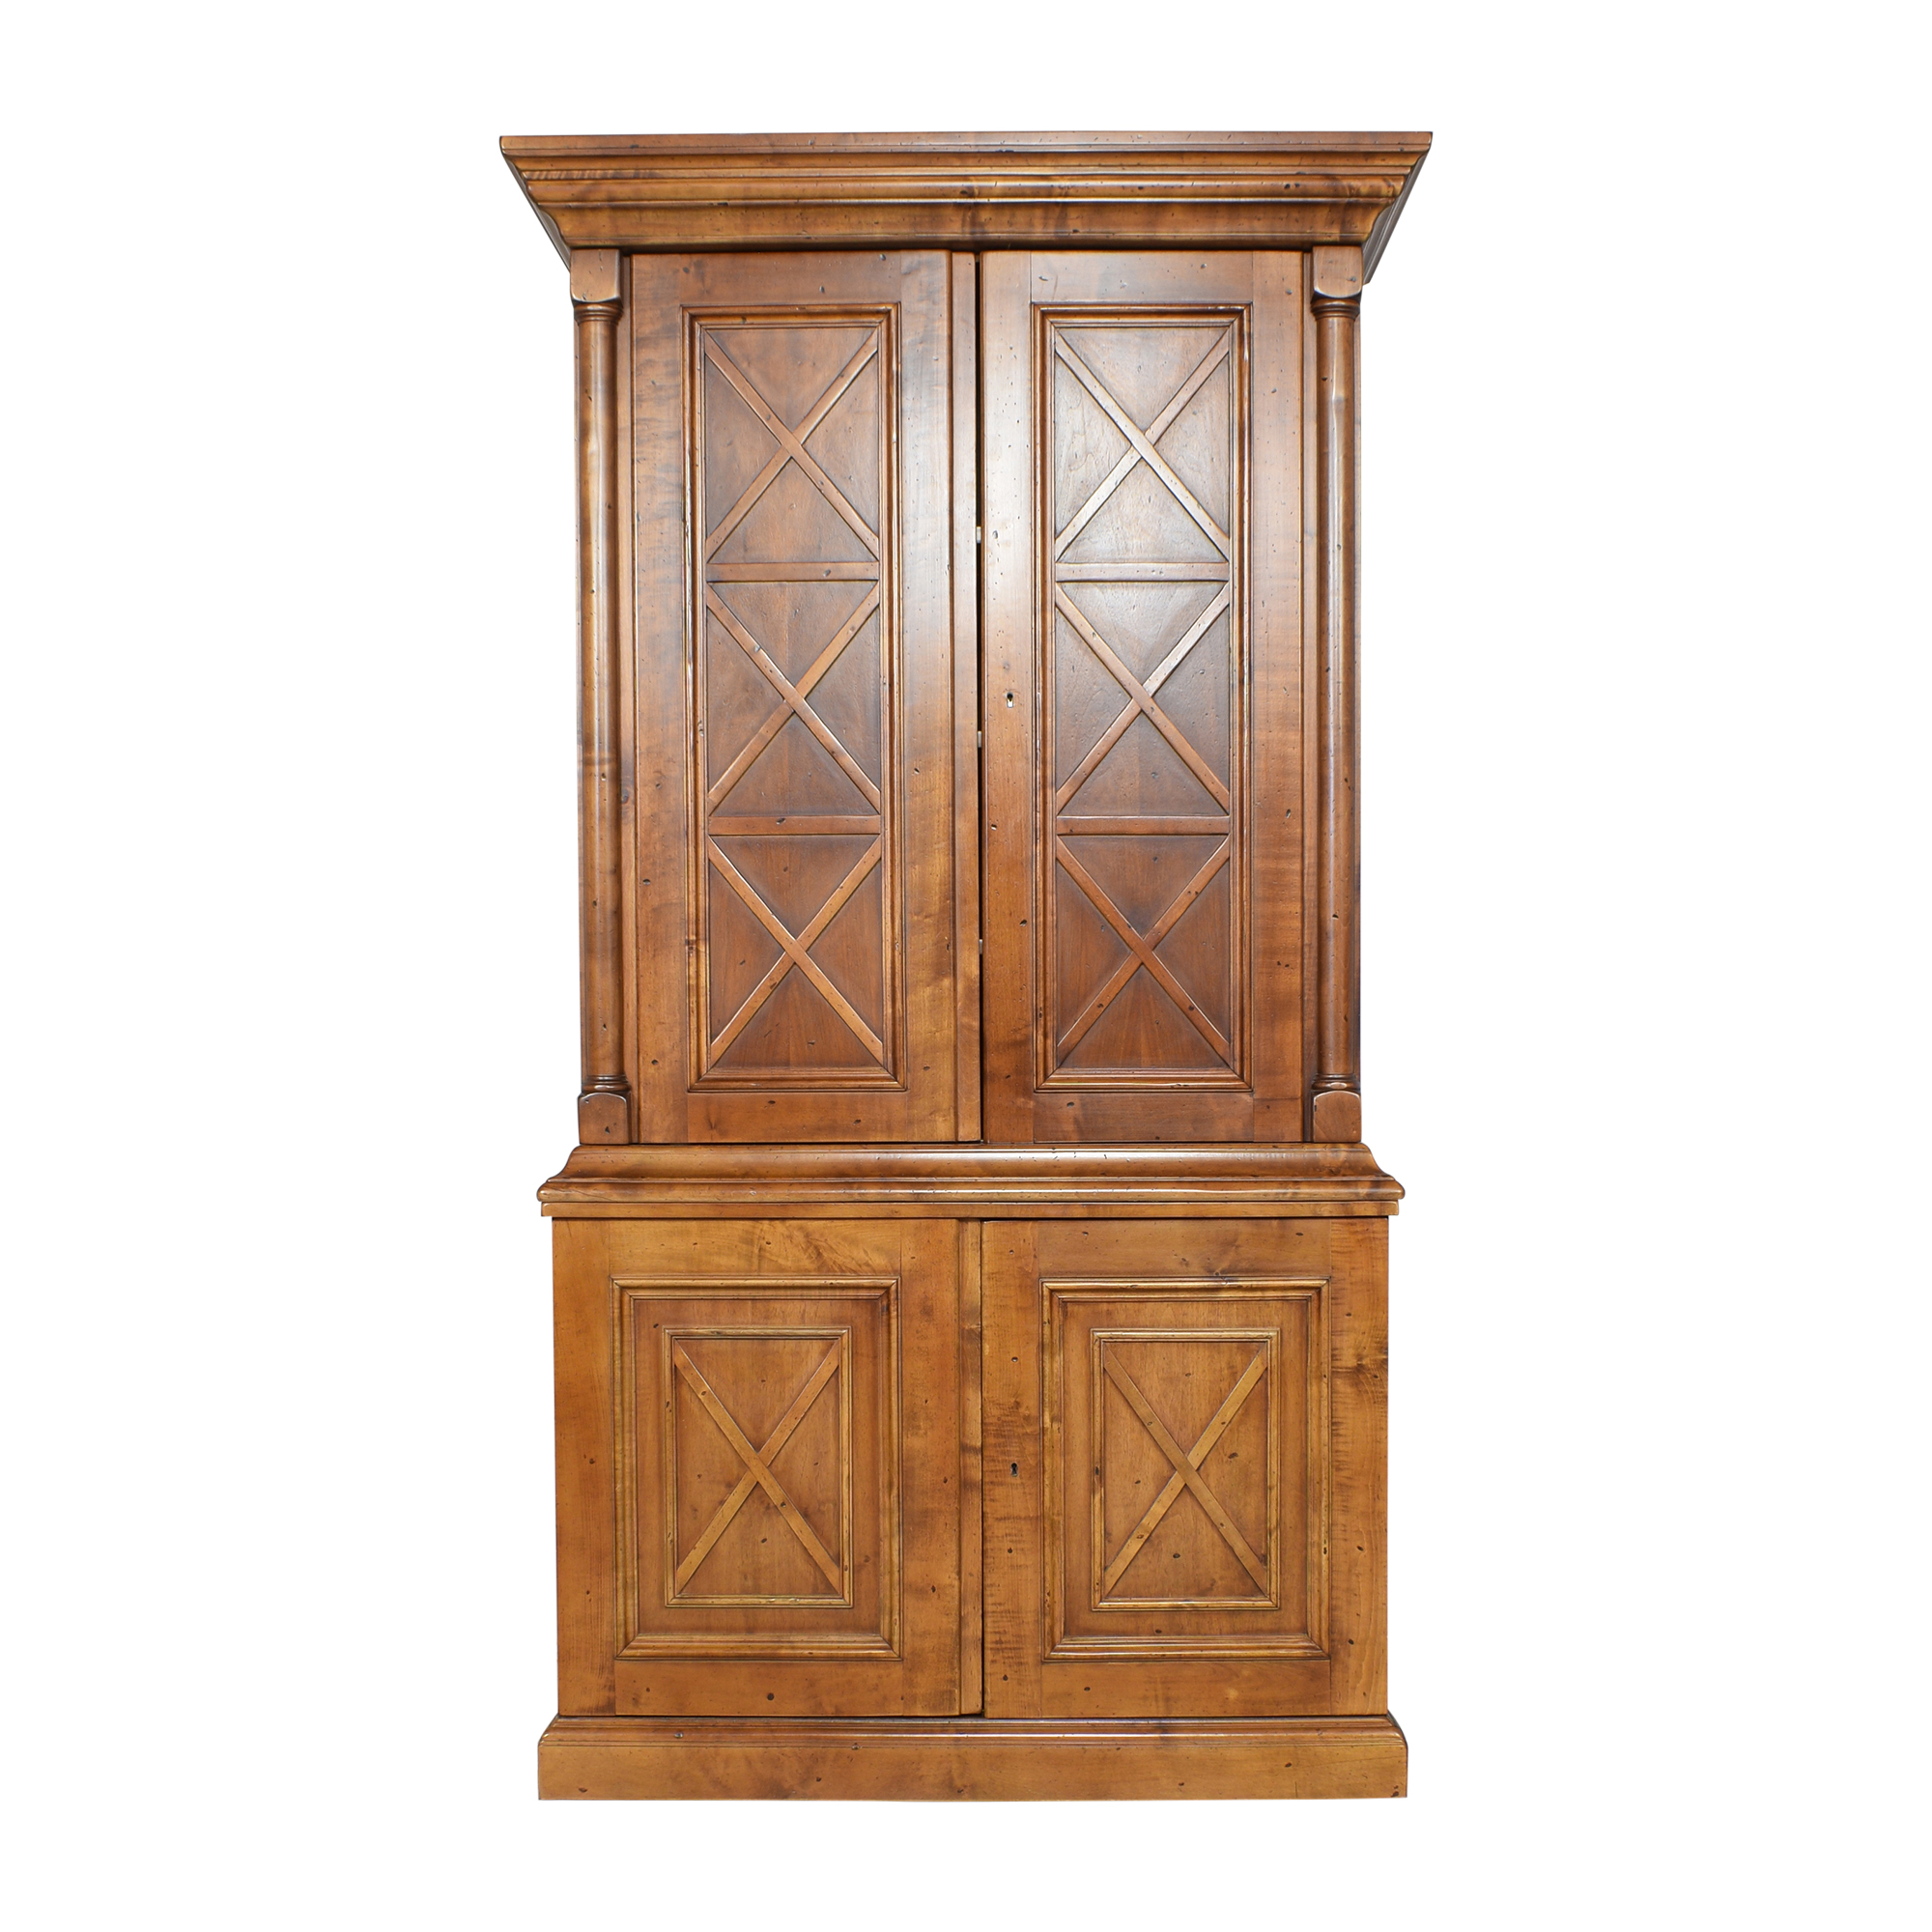 Bloomingdale's Guido Zichele for Bloomingdale's Armoire dimensions